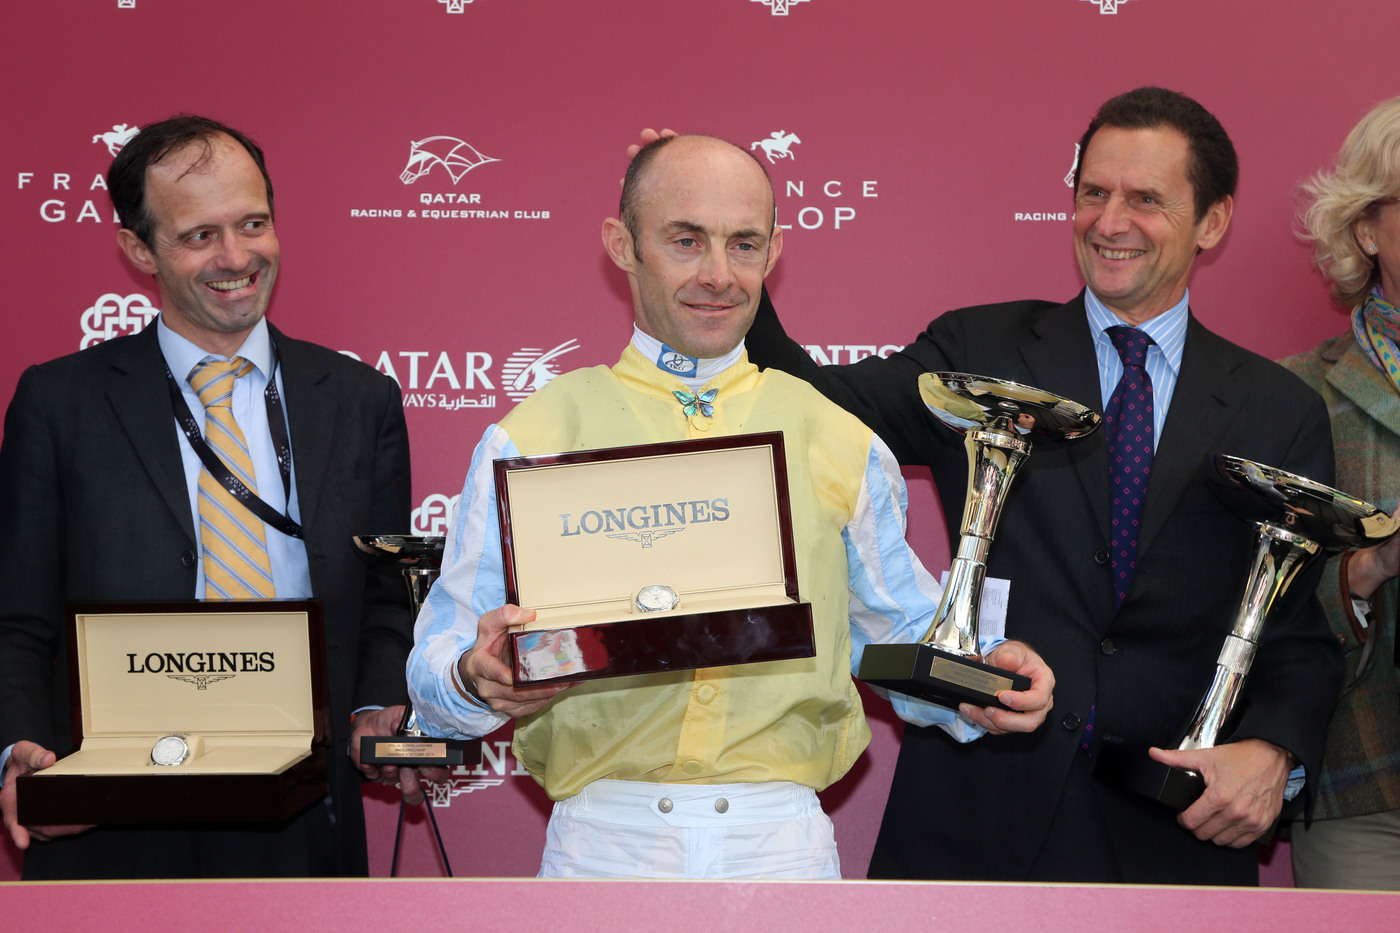 Longines Flat Racing Event: Waldgeist wins the 98th edition of the Qatar Prix de l'Arc de Triomphe 6